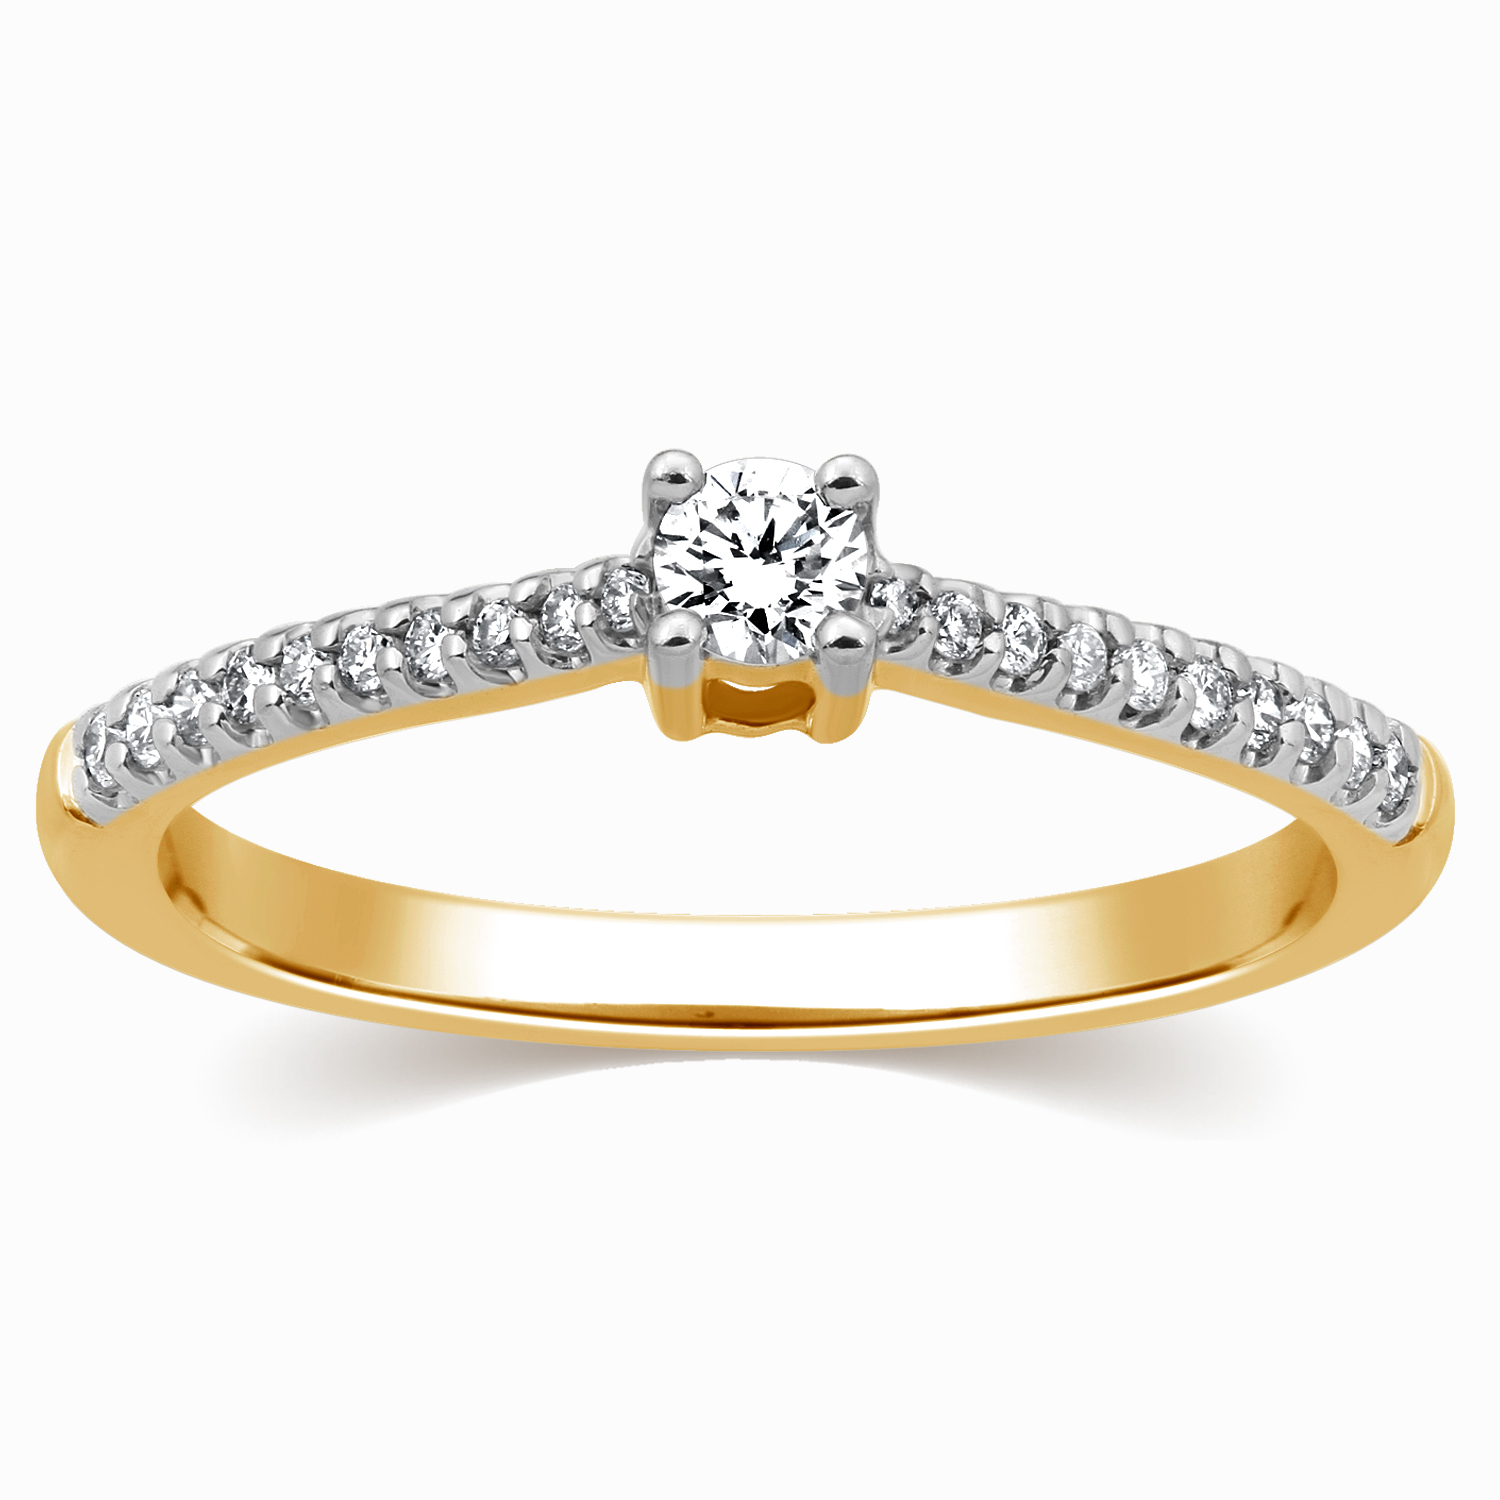 Wedding Rings On Line Buy Serena Diamond Platinum Ring Online Rings